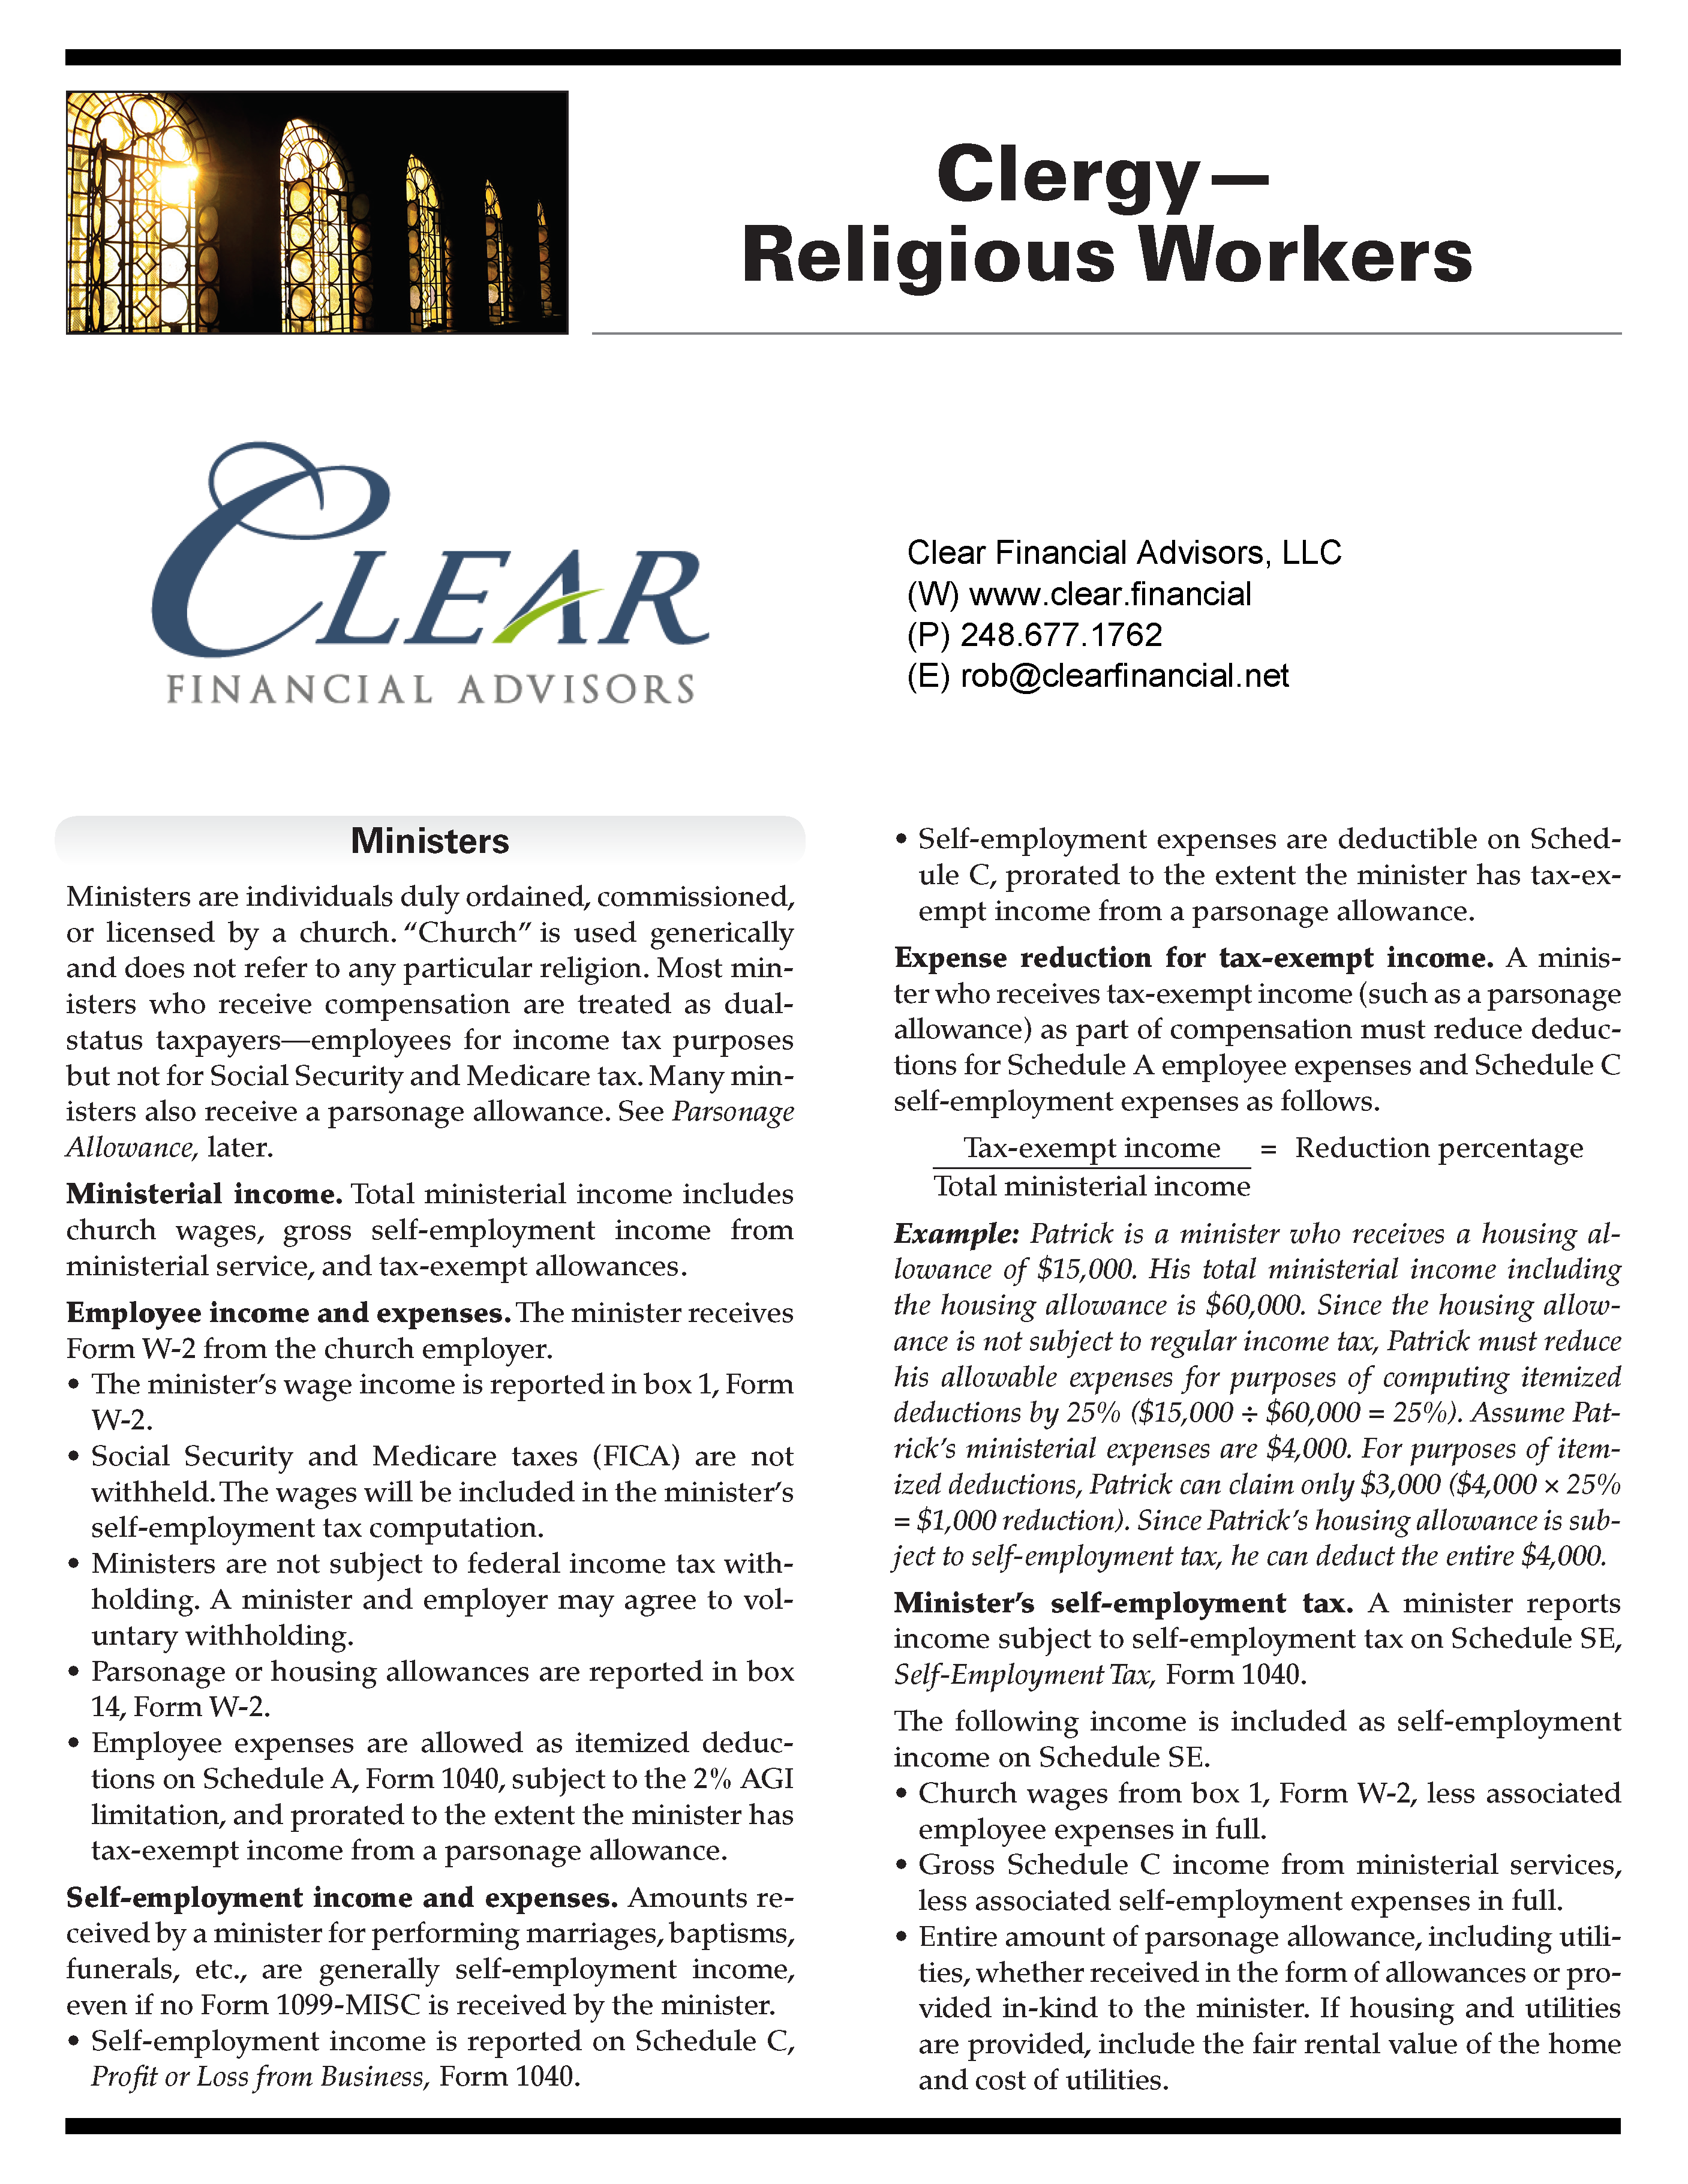 Clergy_-_Religious_Workers_2016_Page_1